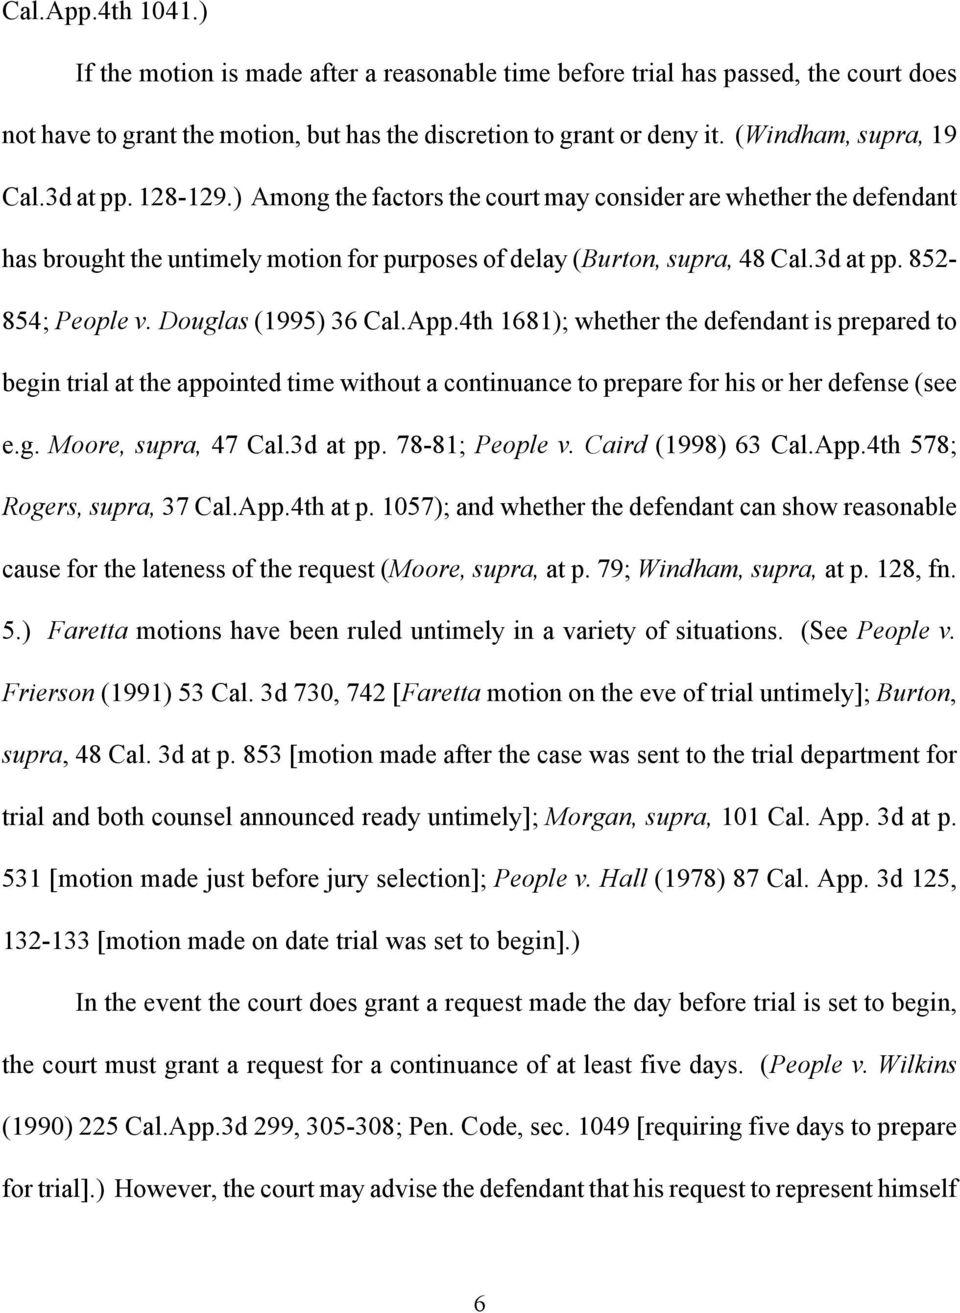 Douglas (1995) 36 Cal.App.4th 1681); whether the defendant is prepared to begin trial at the appointed time without a continuance to prepare for his or her defense (see e.g. Moore, supra, 47 Cal.